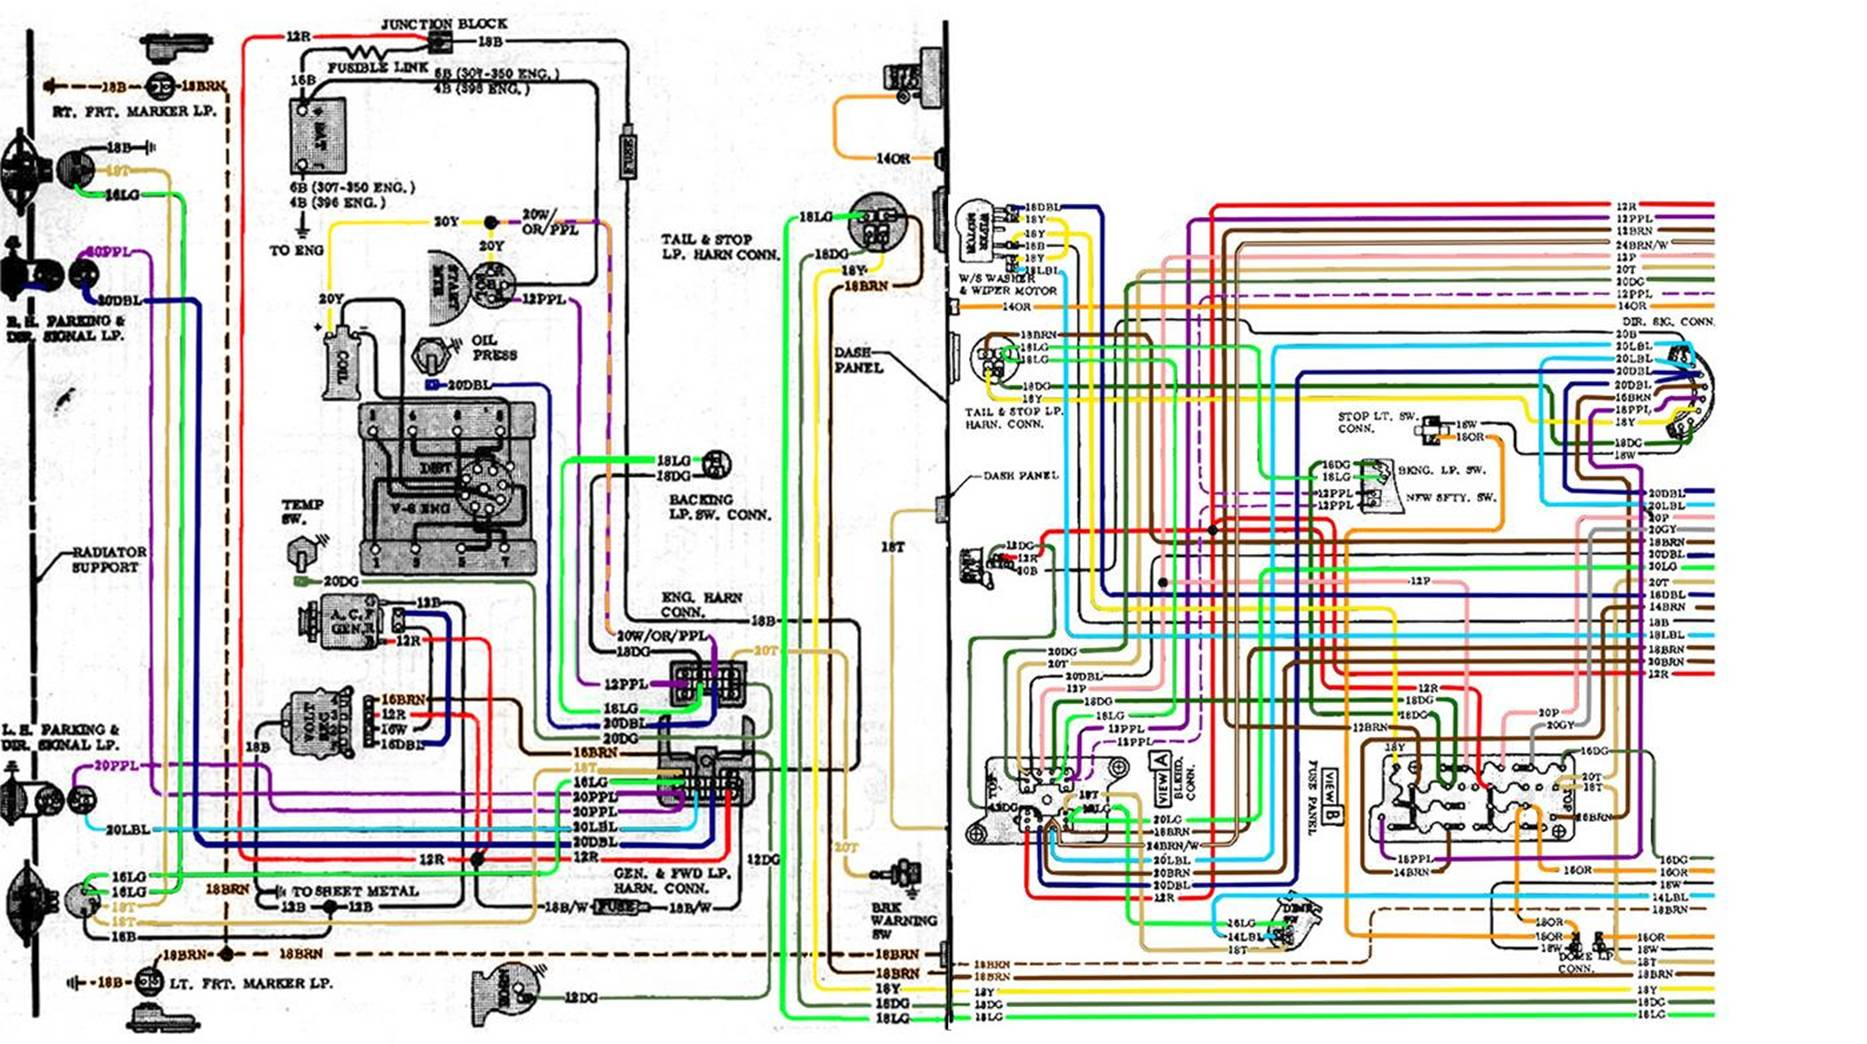 1971 Chevelle Fuse Box Diagram Wiring Library 1999 Mustang Panel 71 Chevy Truck Data 72 Block